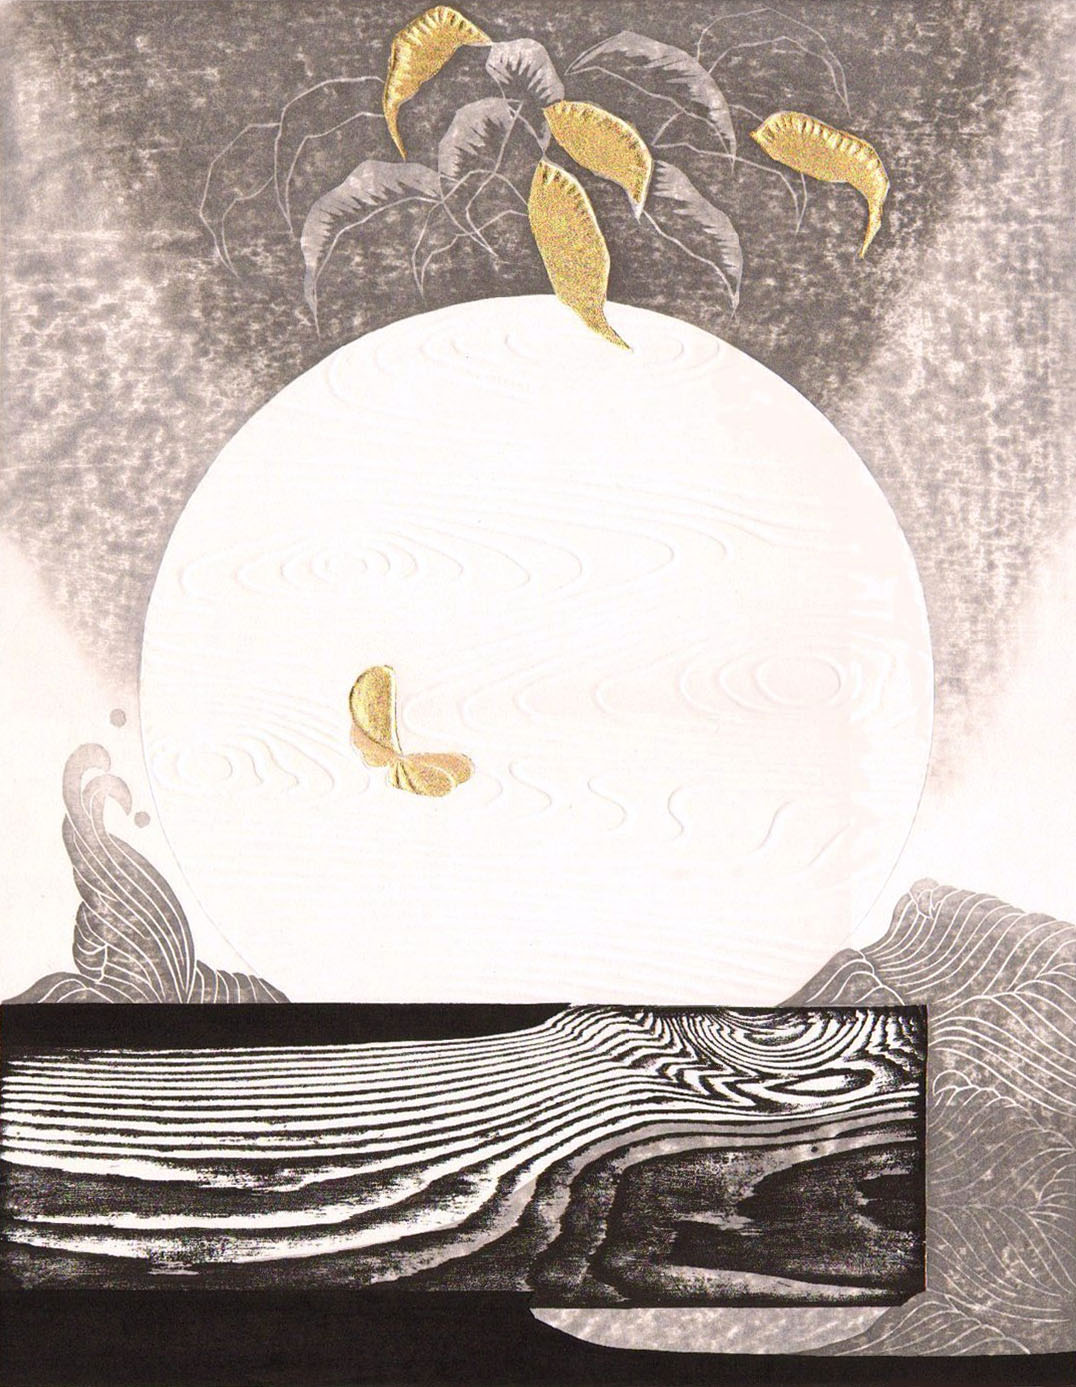 Iwami Reika, <i>Ode to the Sea (D)</i>, 1983. Eli and Edythe Broad Art Museum, Michigan State University, gift of Marilyn and Jack Worth, MSU Class of 1948.